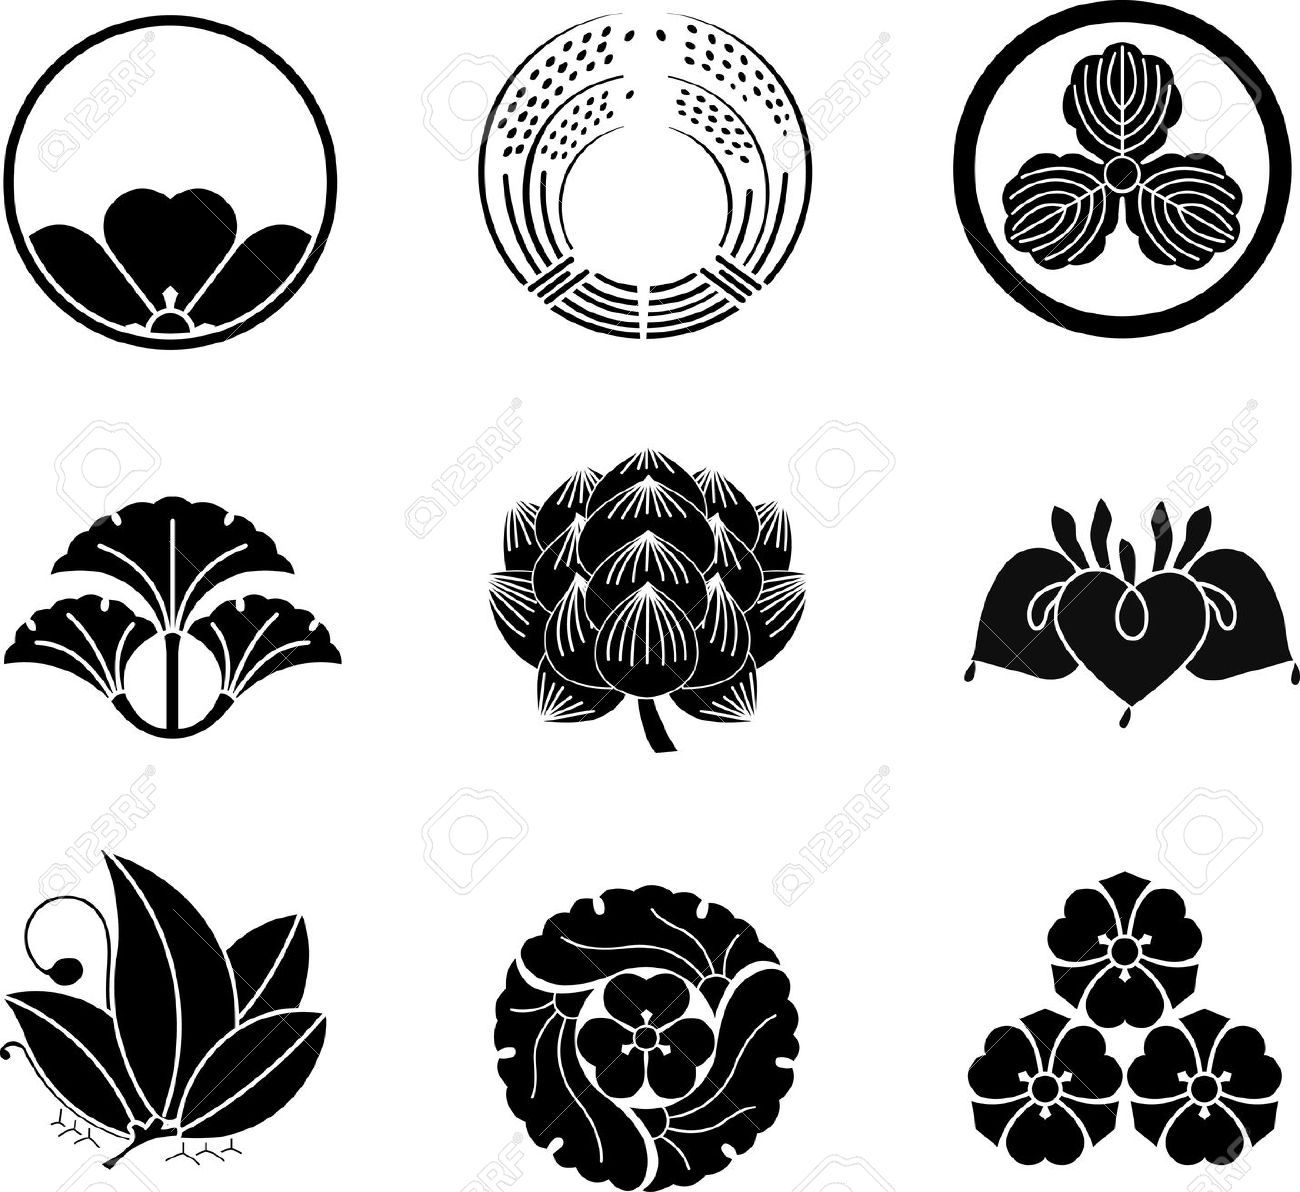 Japanese Lotus Flower Google Search Art Japanese Family Crest